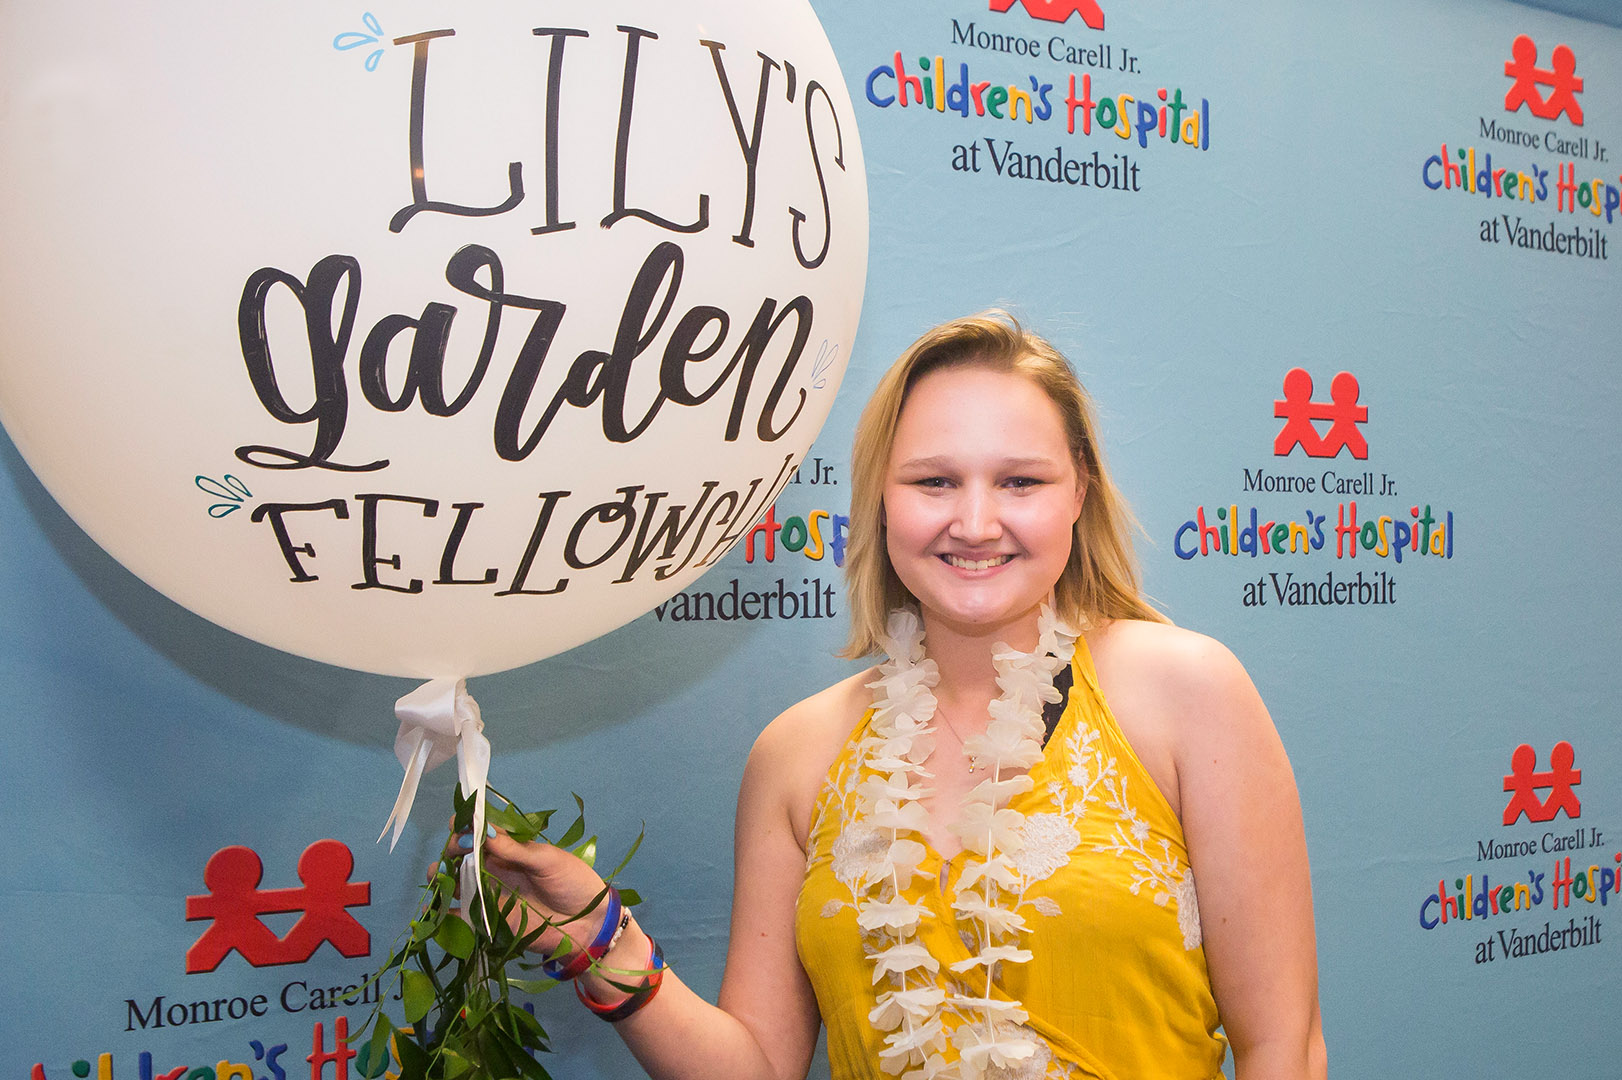 Lily Hensiek - At the age of 17, Lily has already battled cancer twice. She has turned her story into one of inspiration and hope by becoming a philanthropist for cancer research.